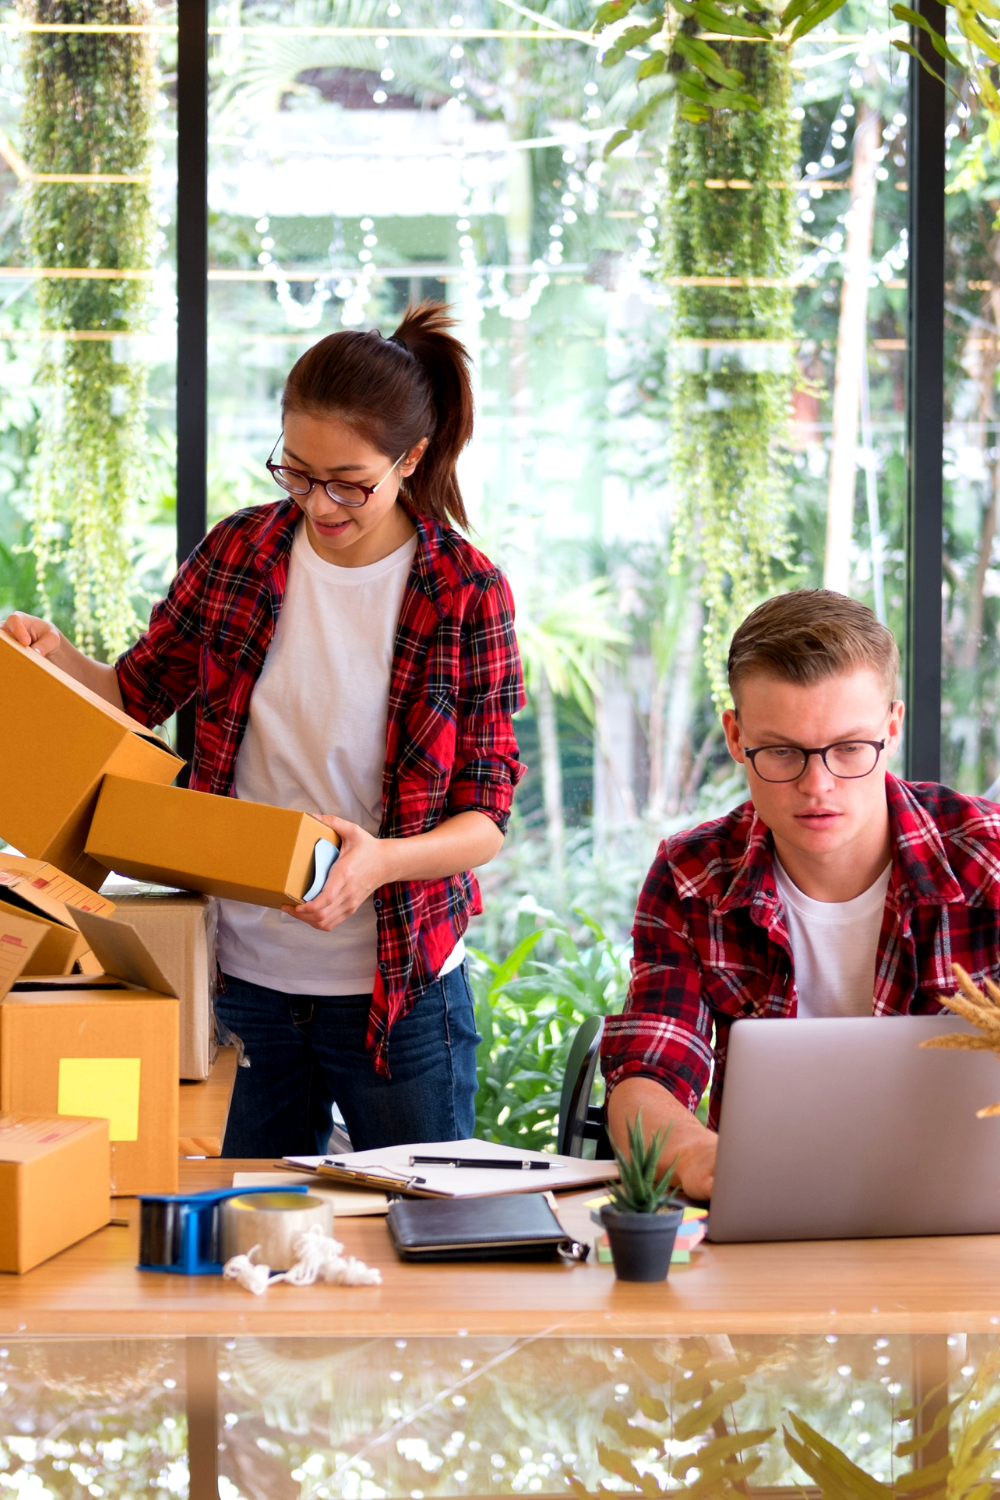 Selling products from home is an increasingly common way of doing business Find out the nine best products to sell online from home here